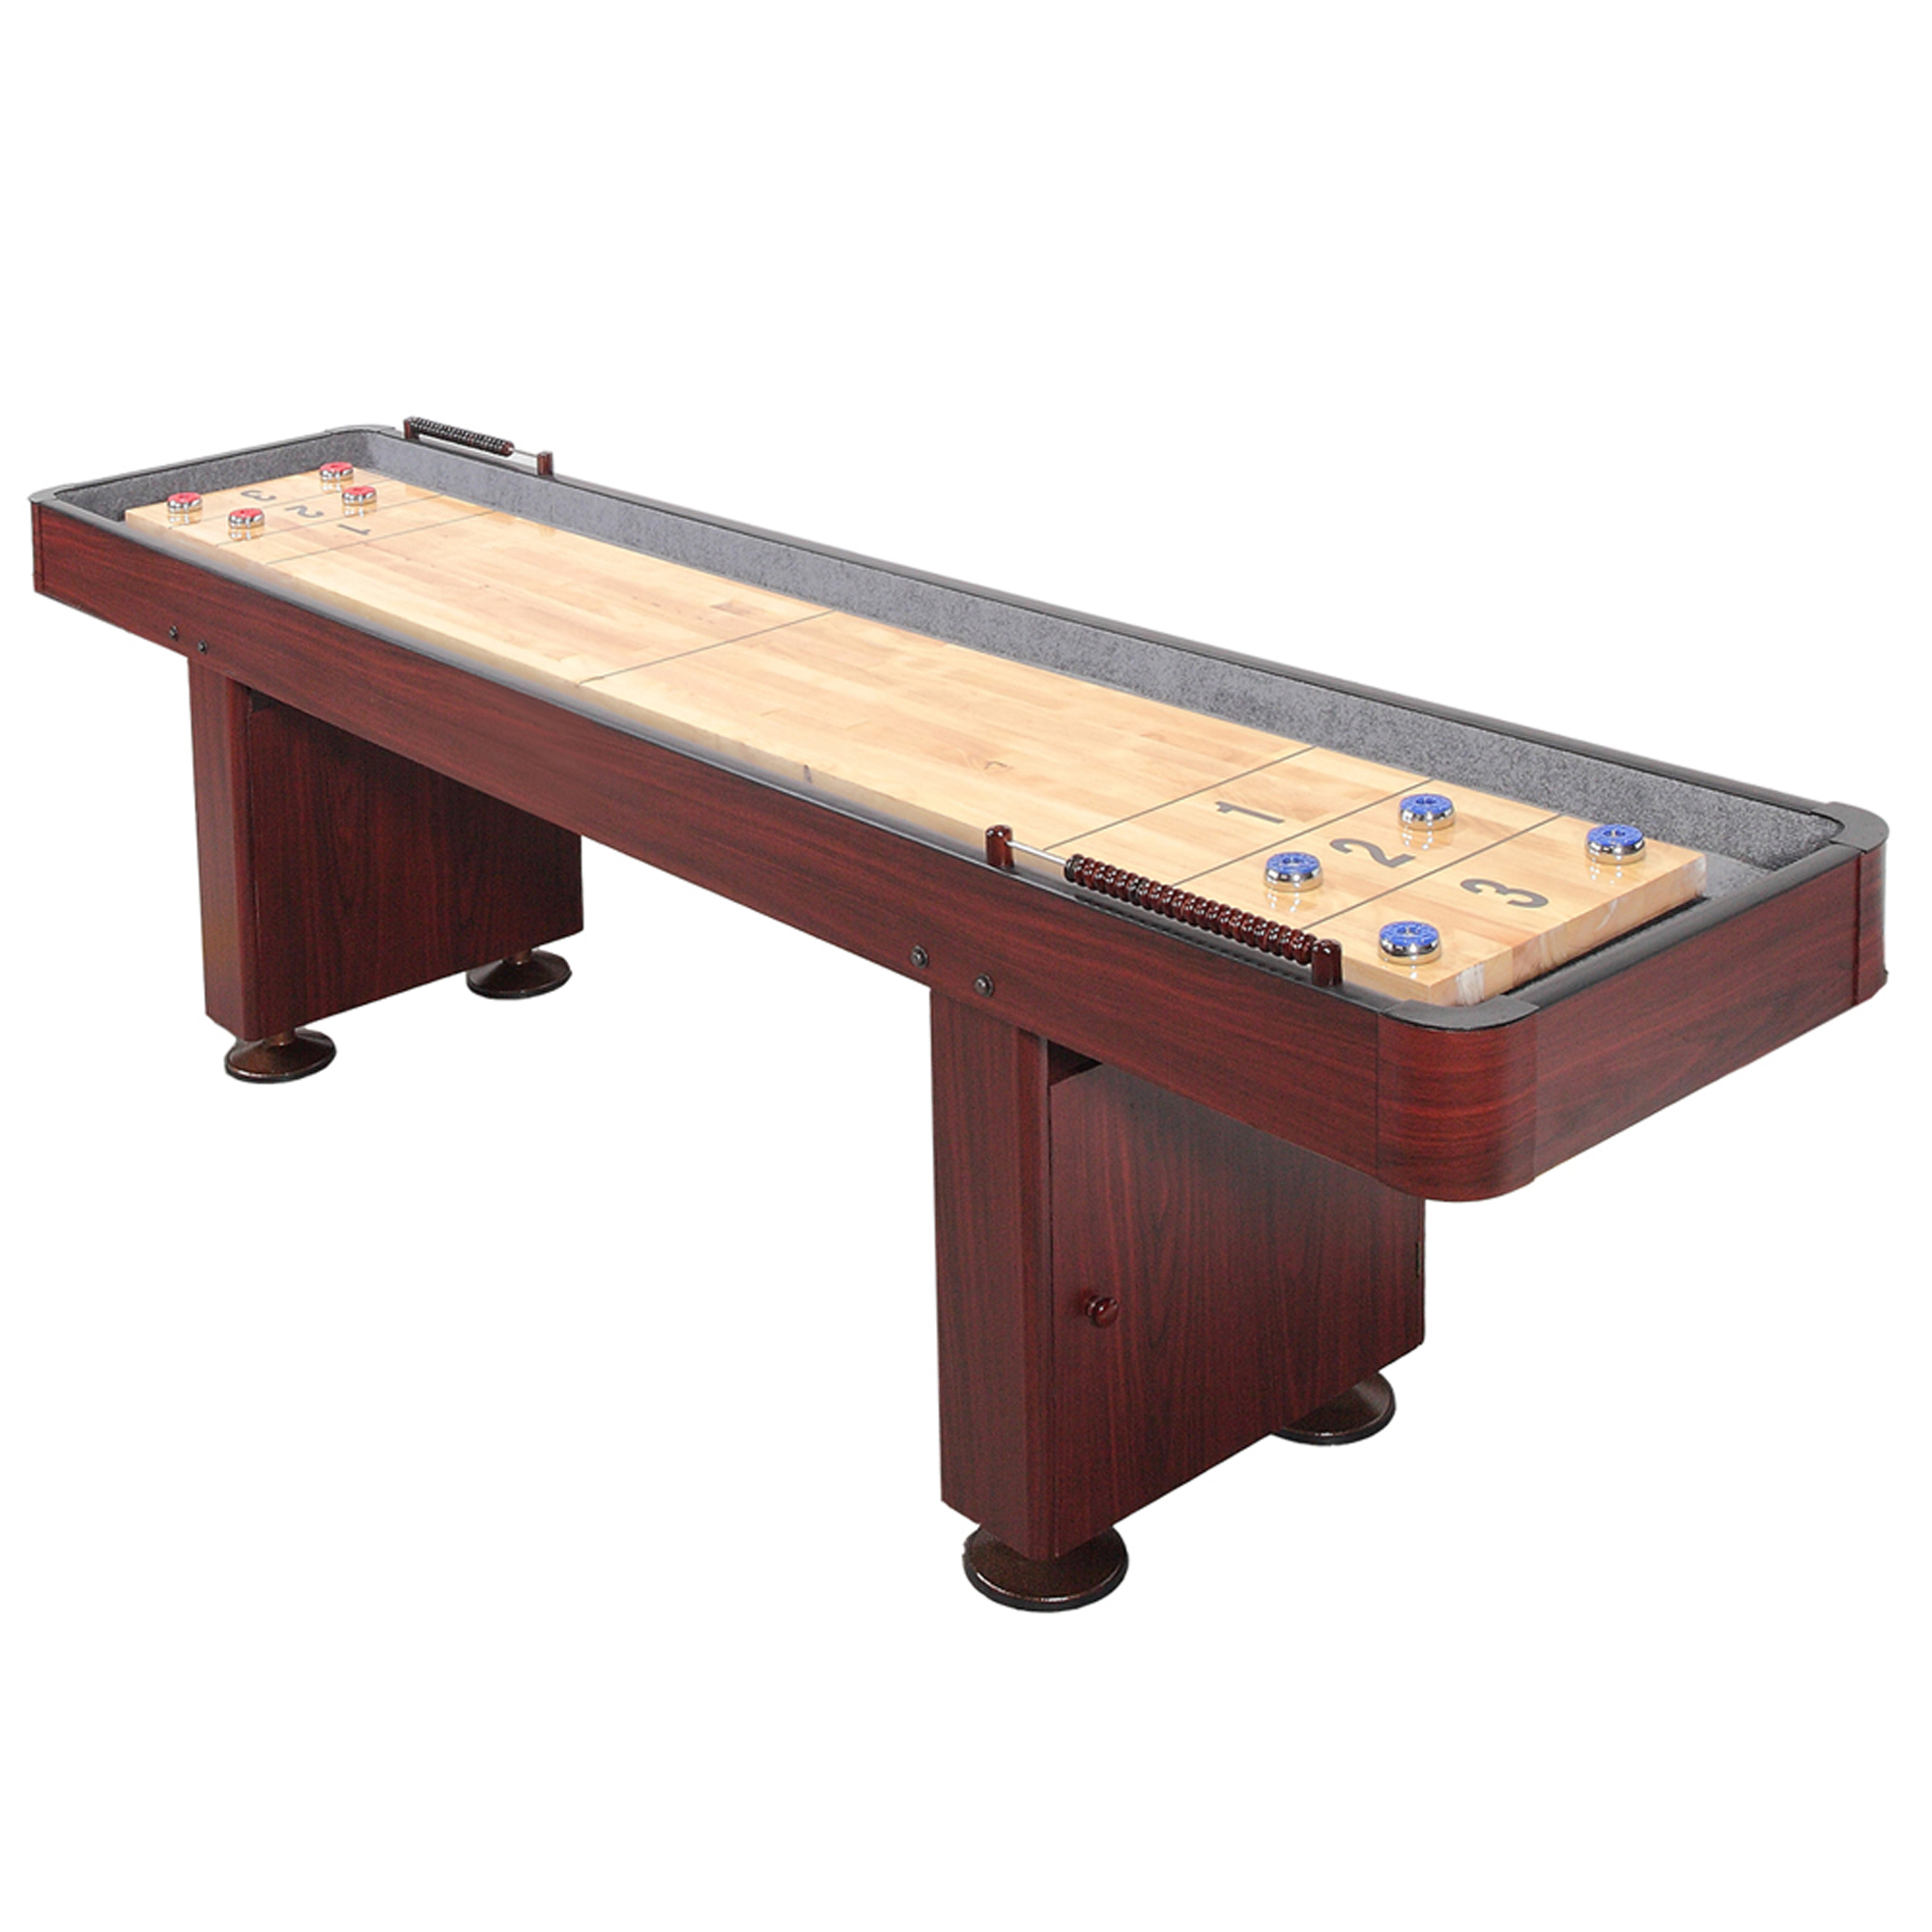 Hathaway Challenger 9-Ft Shuffleboard Table w Dark Cherry Finish, Hardwood Playfield and Storage Cabinets